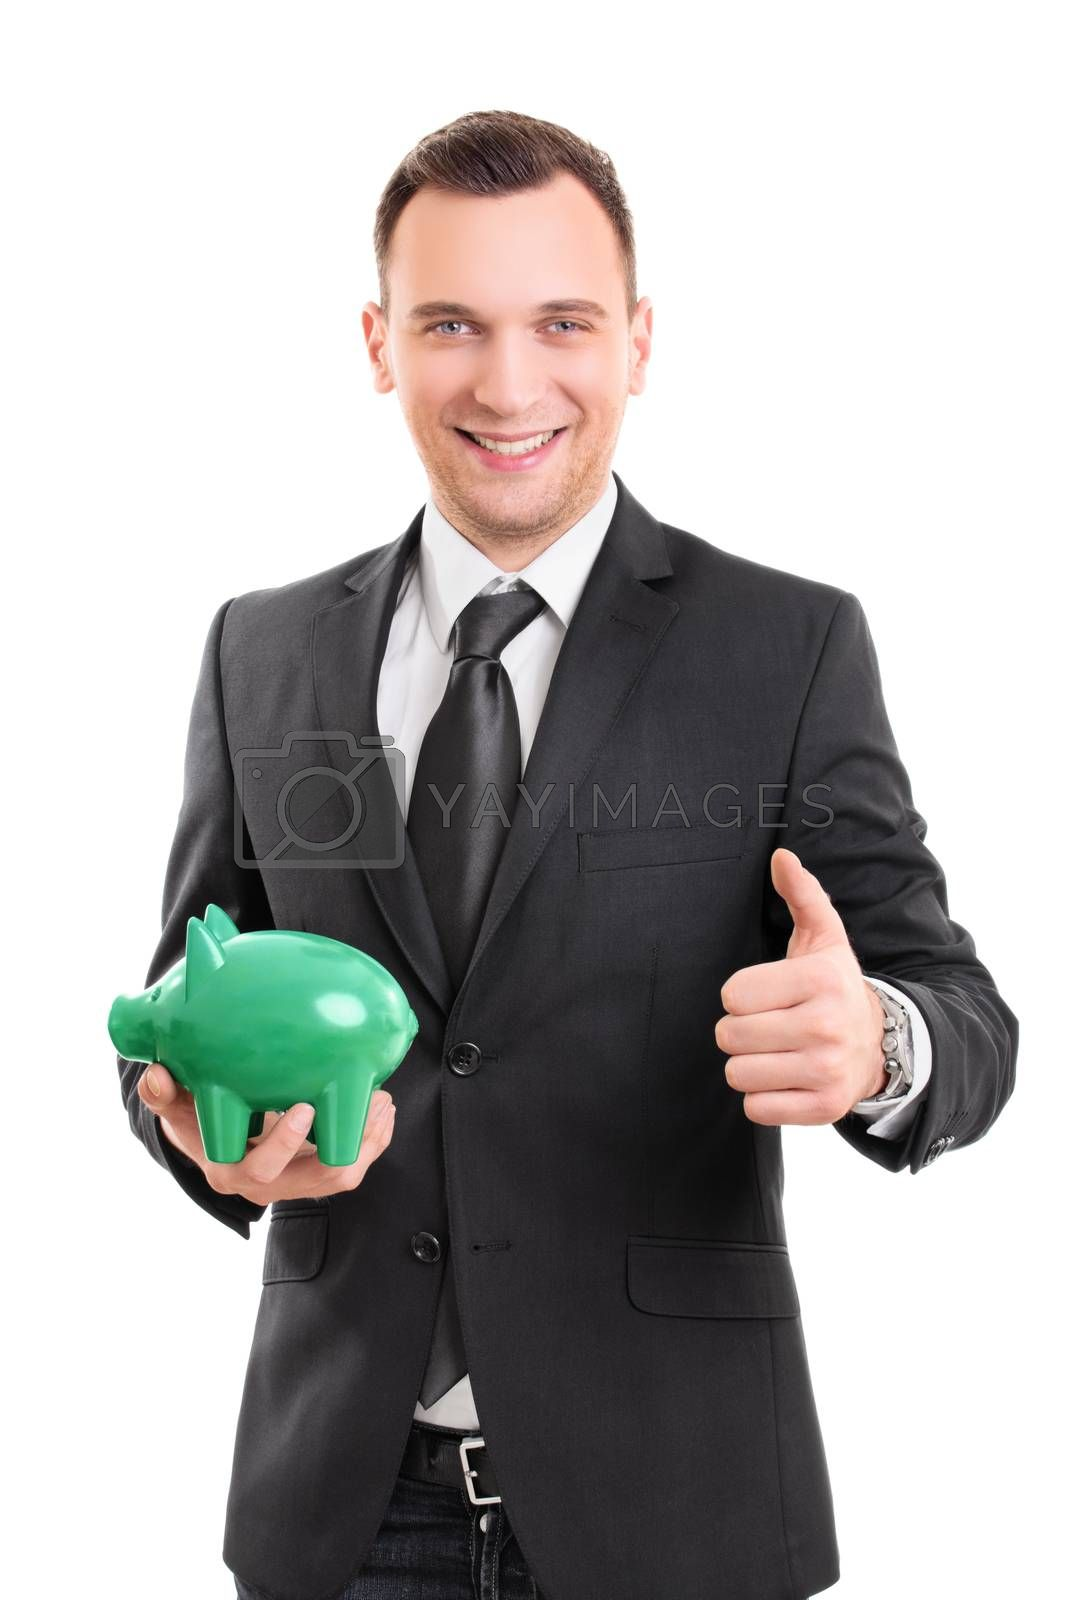 Handsome young businessman in a suit holding a piggy bank, smiling and giving thumb up, isolated on white background. Saving money concept. Confident businessman with a piggy bank.